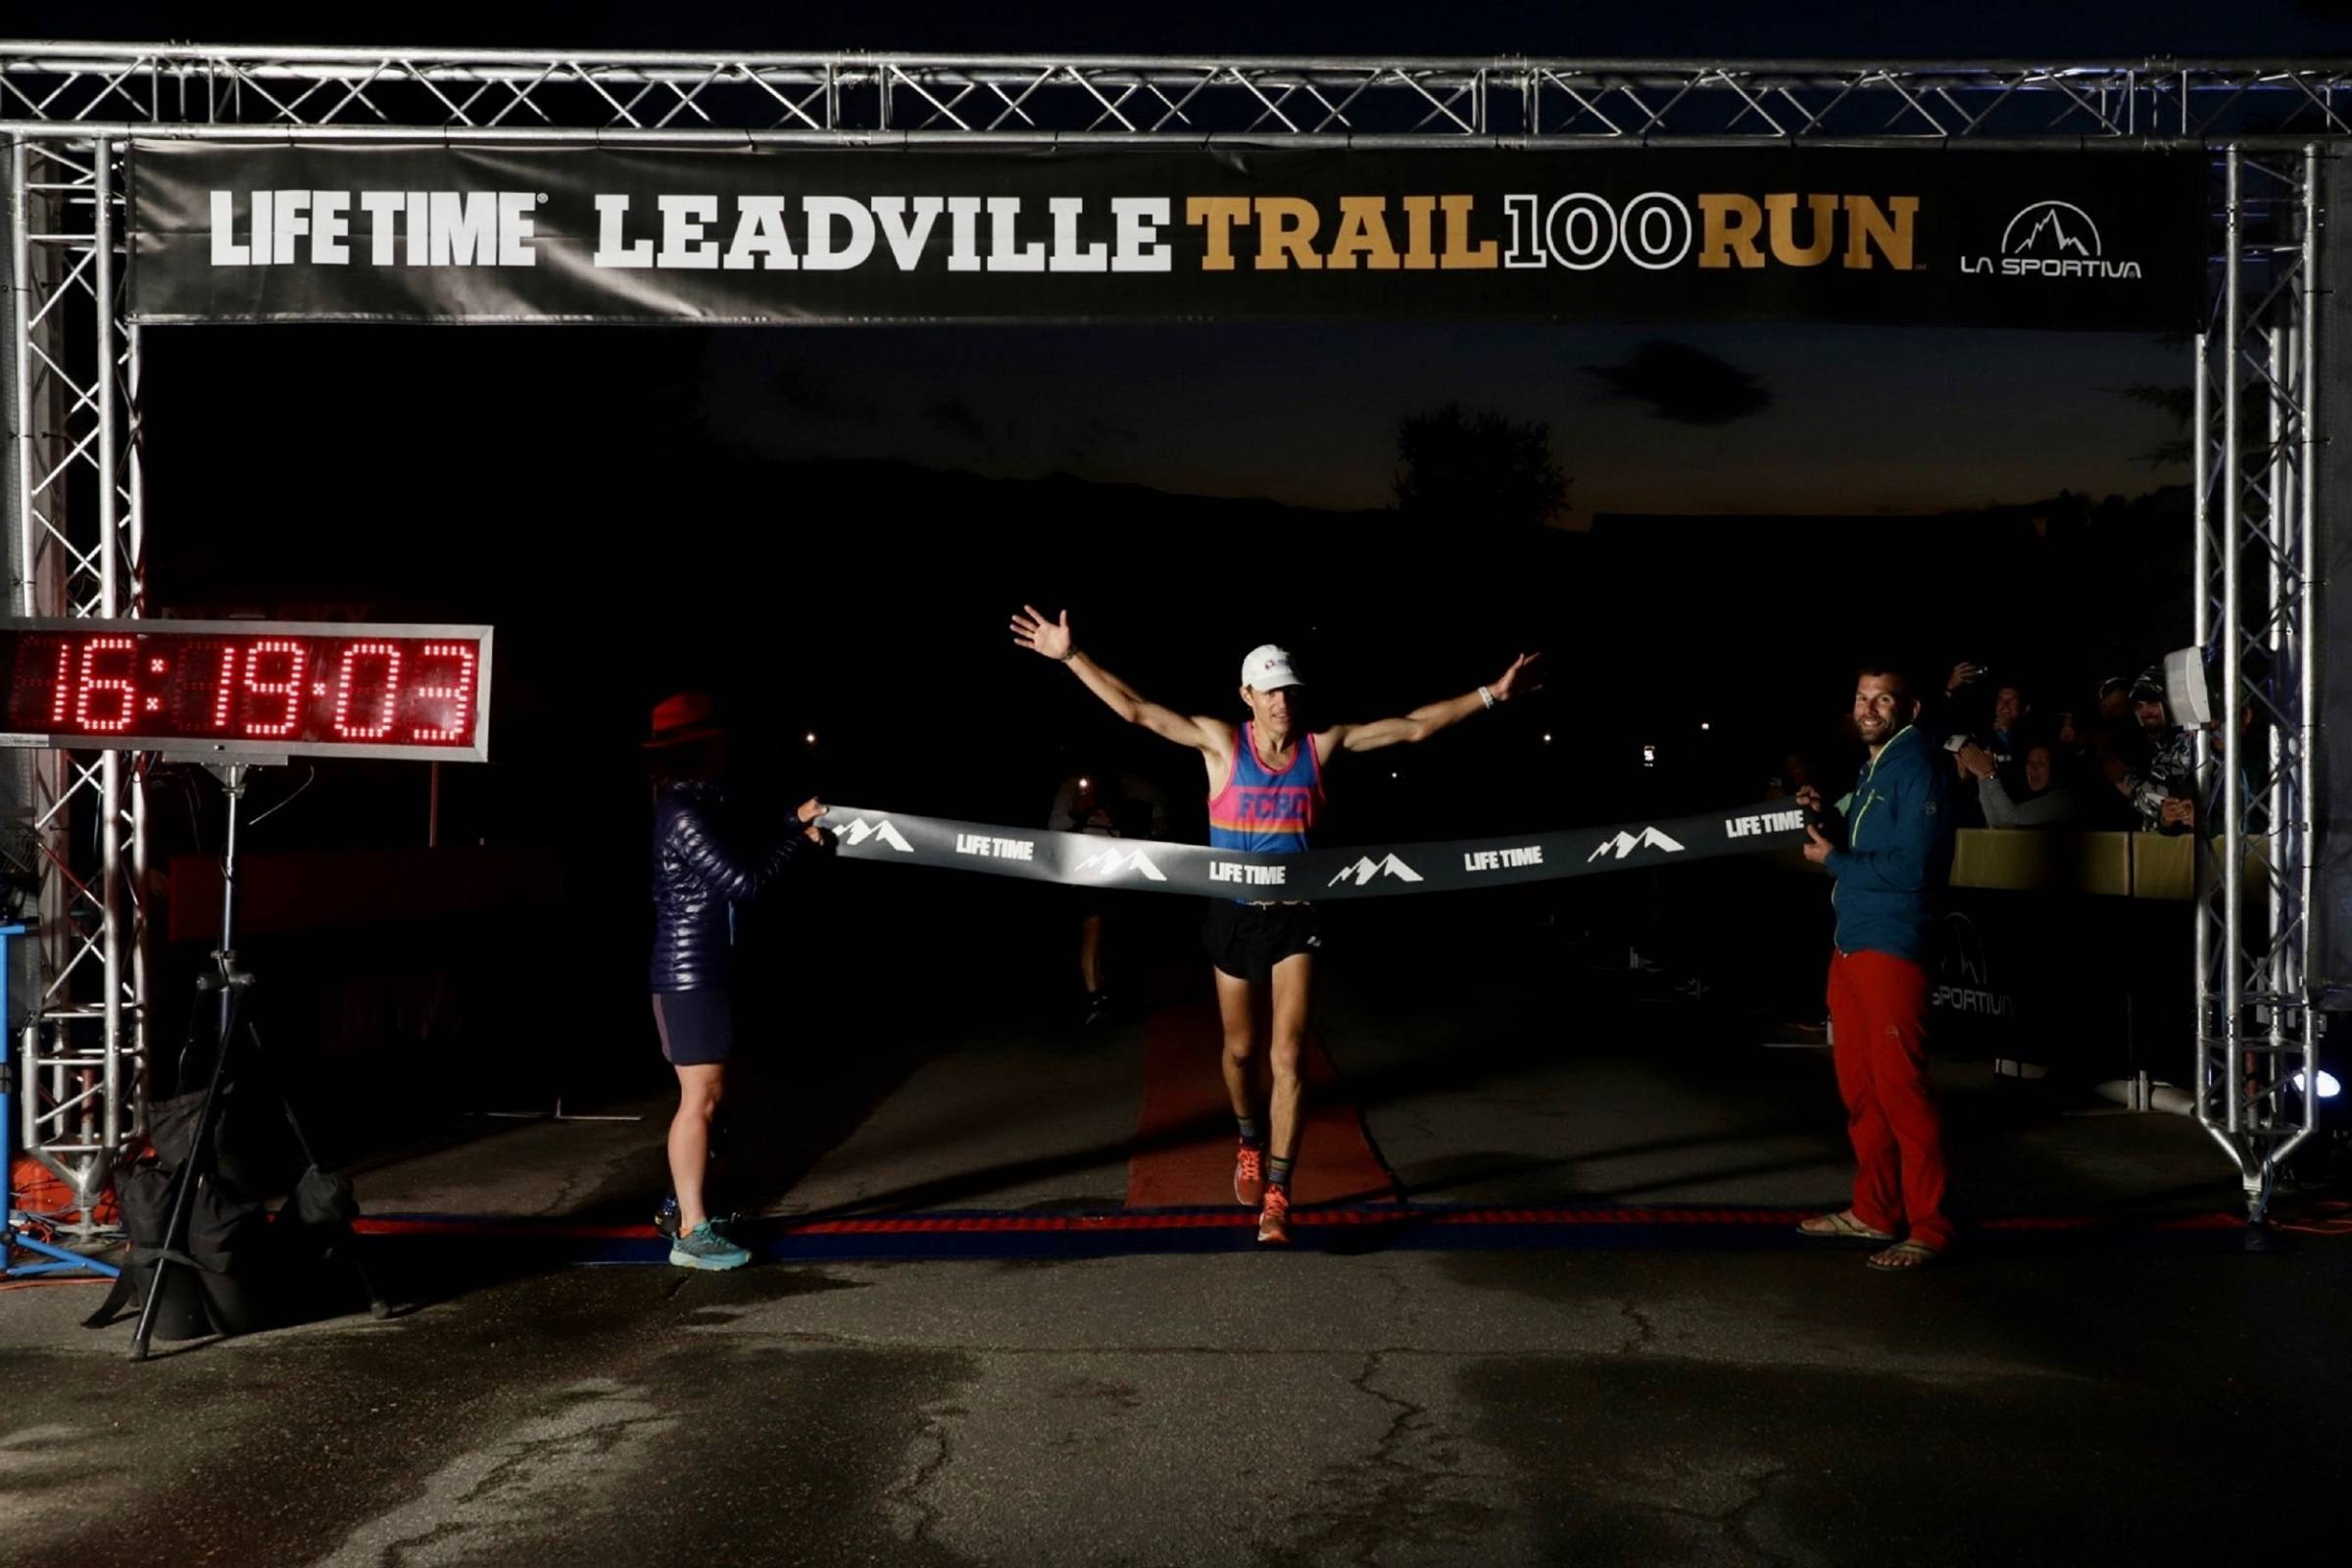 Adrian Macdonald took first in the Leadville Trail 100 on Aug. 22, 2021 (Photo/Life TIme)